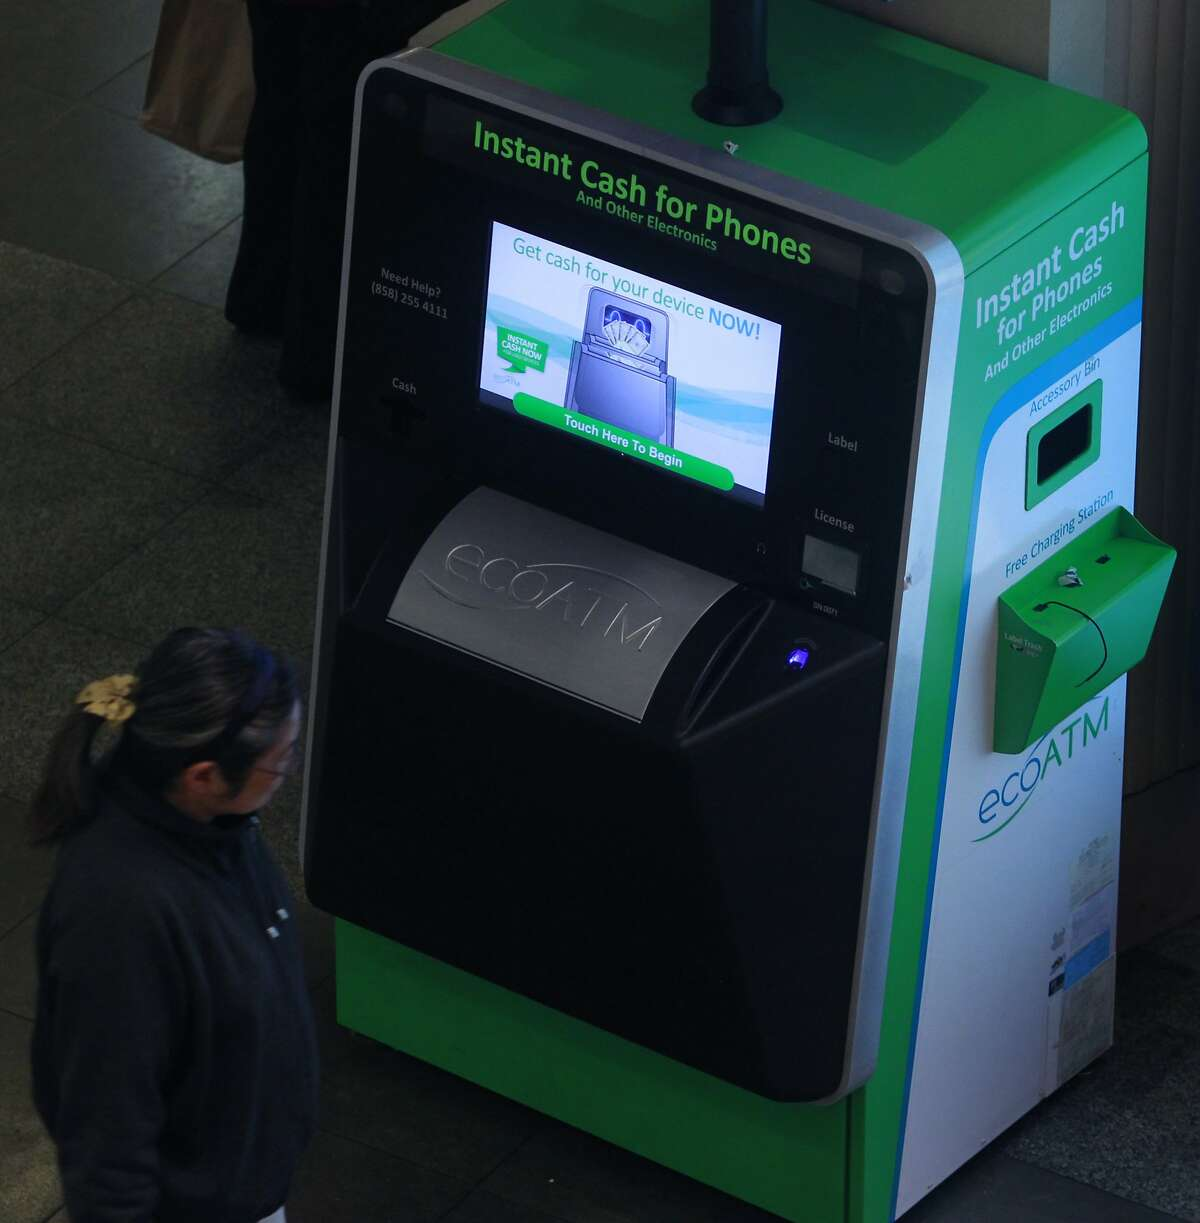 A shopper walks past a kiosk that pays instant cash for cellphones at the Westfield SF Centre shopping mall in San Francisco, Calif. on Wednesday, April 2, 2014, but the police are concerned that it provides a way for thieves to cash in quickly on their mobile phone thefts.